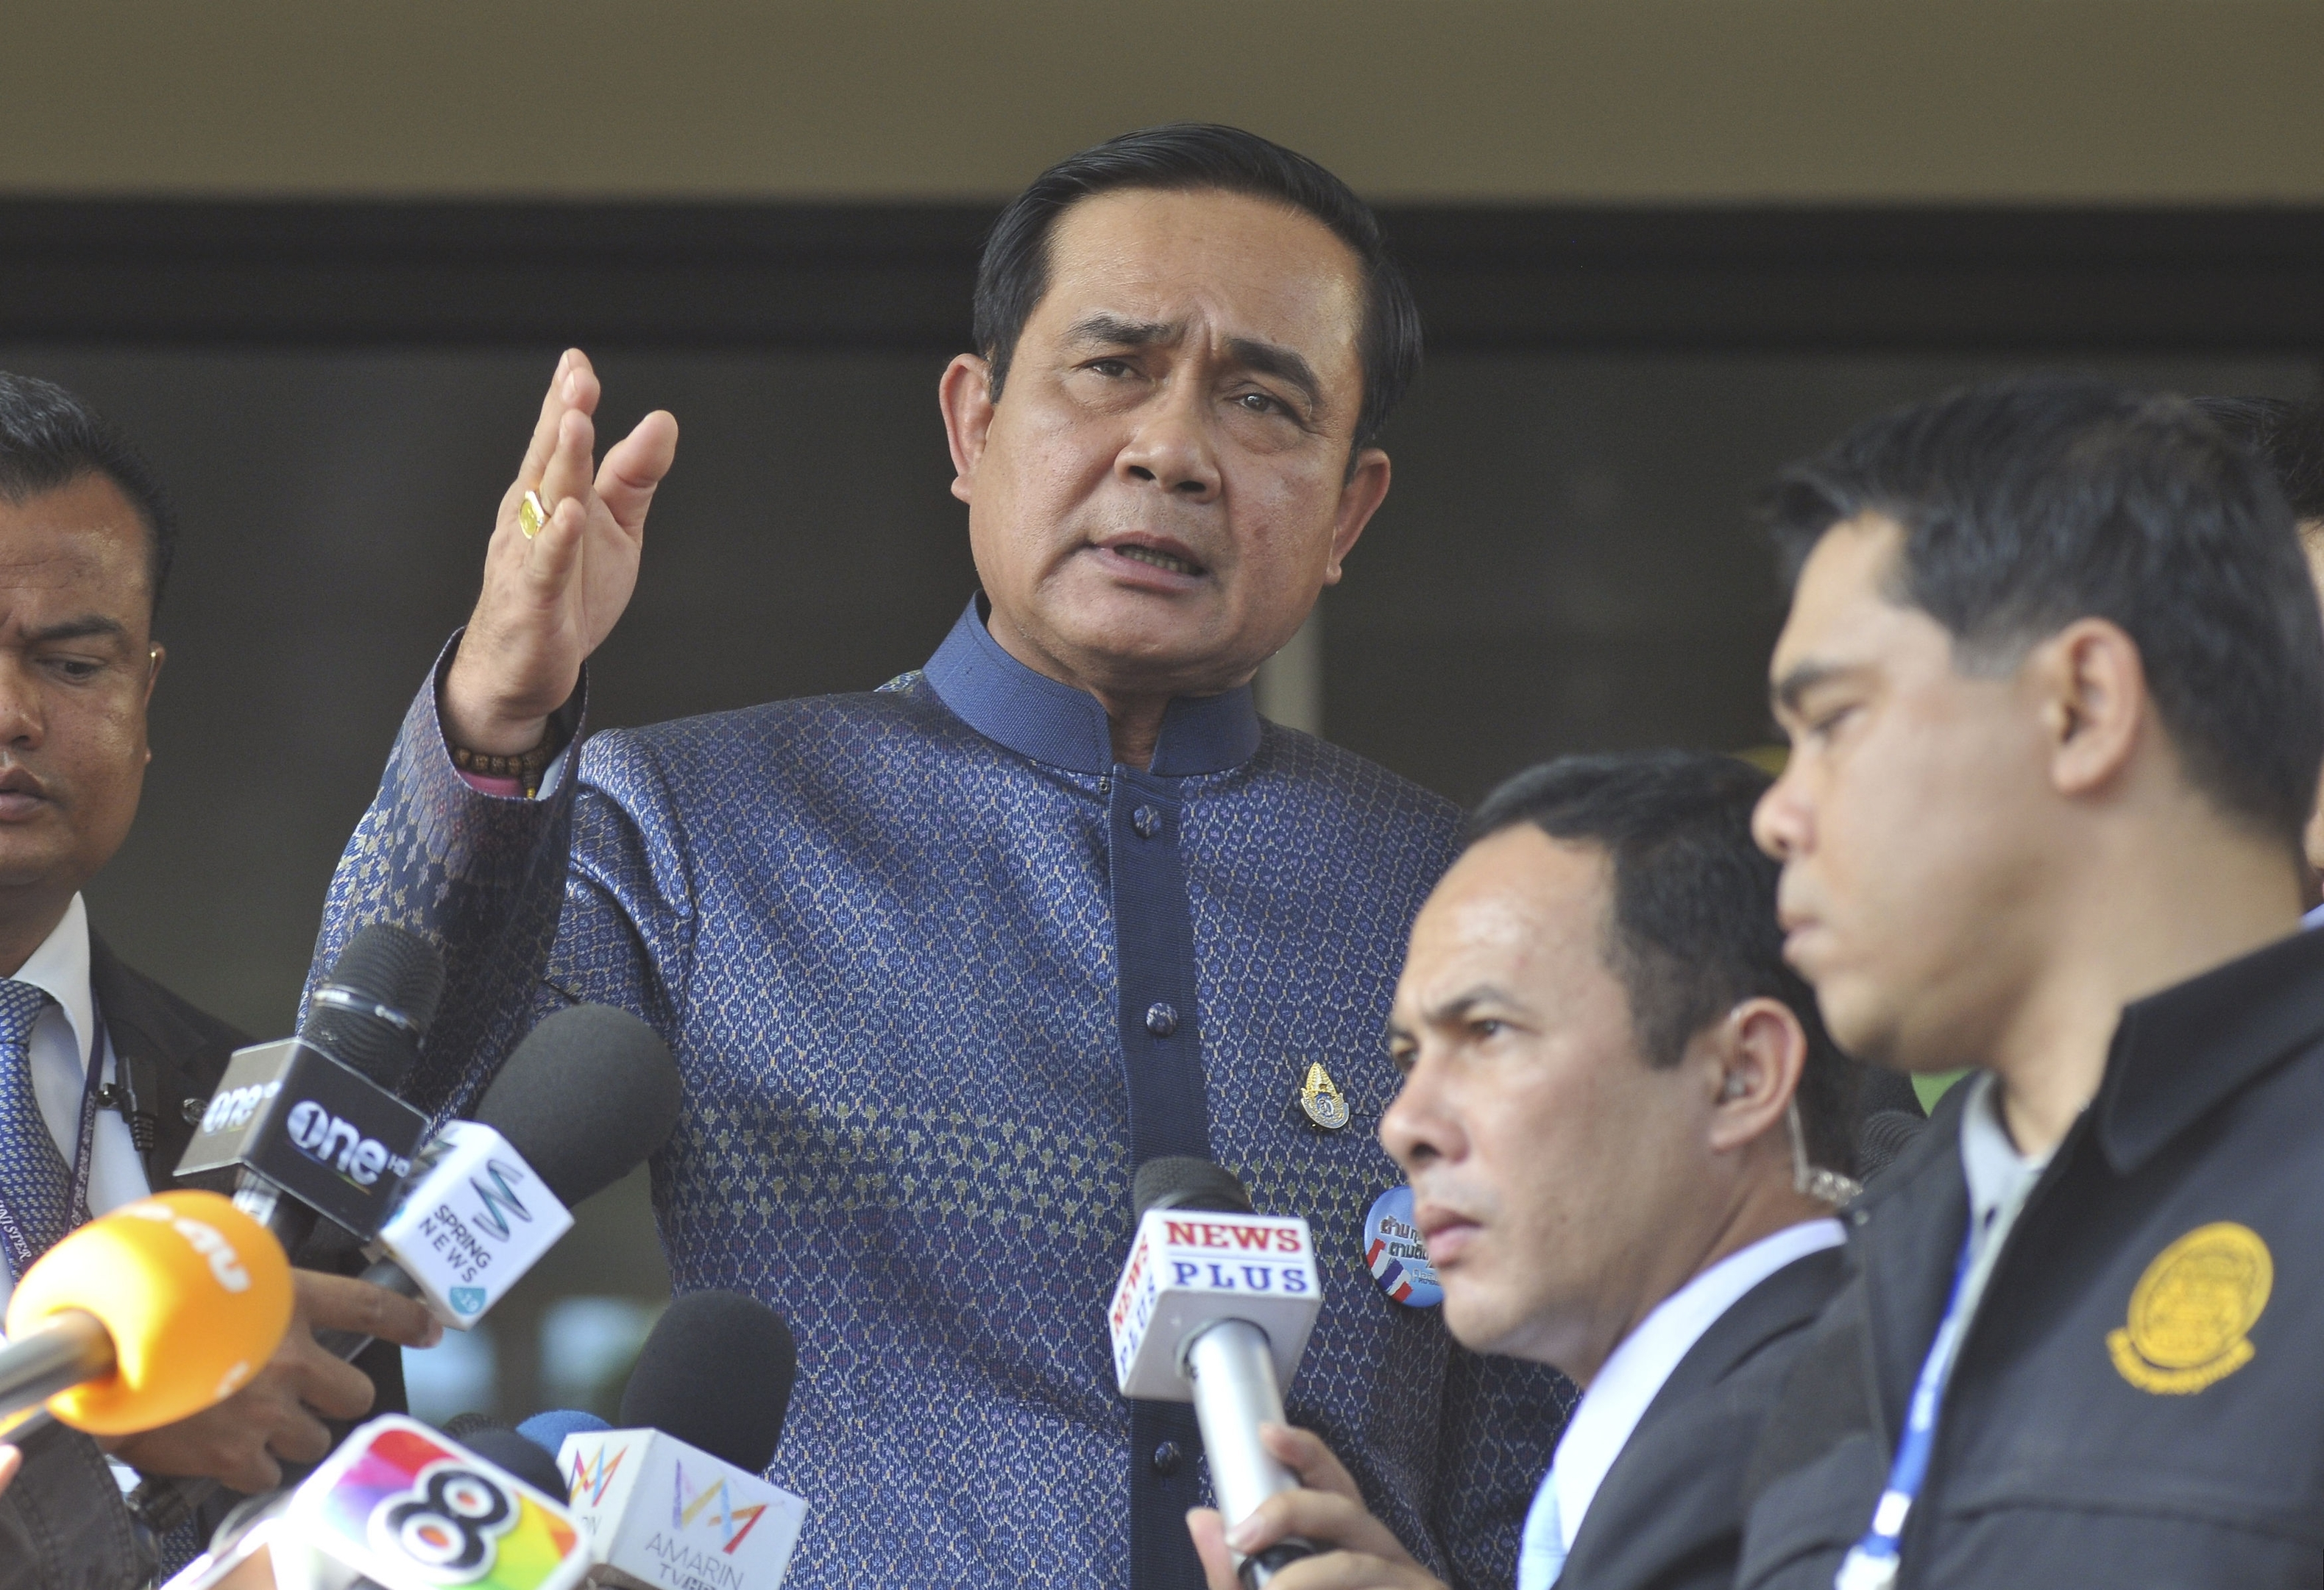 Thailand's Prime Minister Prayuth Chan-ocha speaks to reporters in Bangkok, Tuesday, Aug. 18, 2015. Prayuth on Tuesday promised that authorities would quickly track down those responsible for the central Bangkok bombing which he described as the country's worst attack ever.